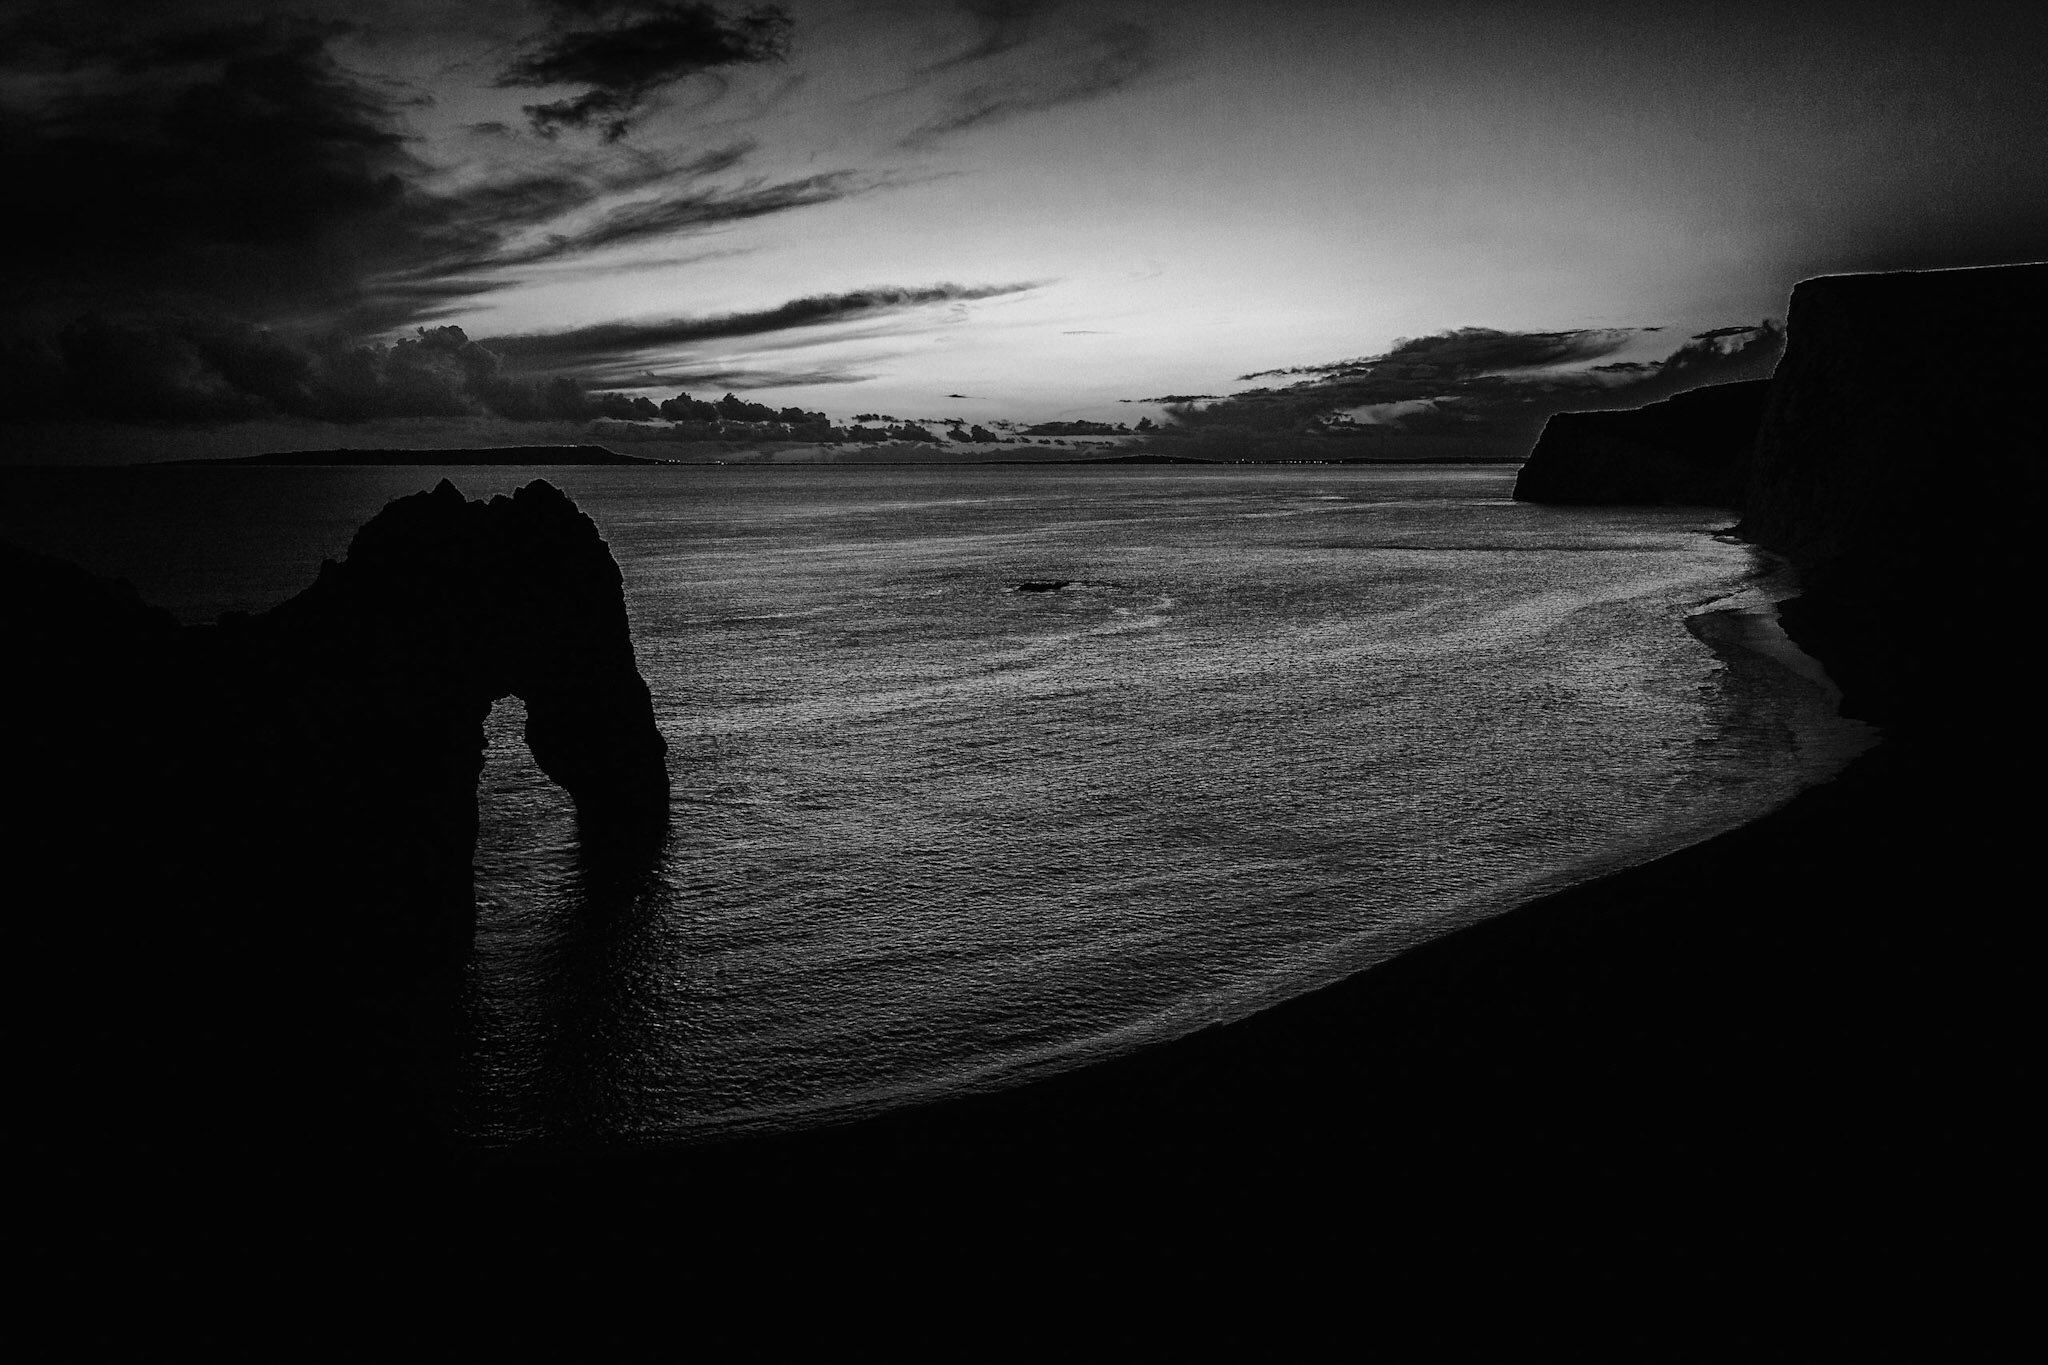 Durdle Door - black and white landscape photography in Dorset by Rick McEvoy